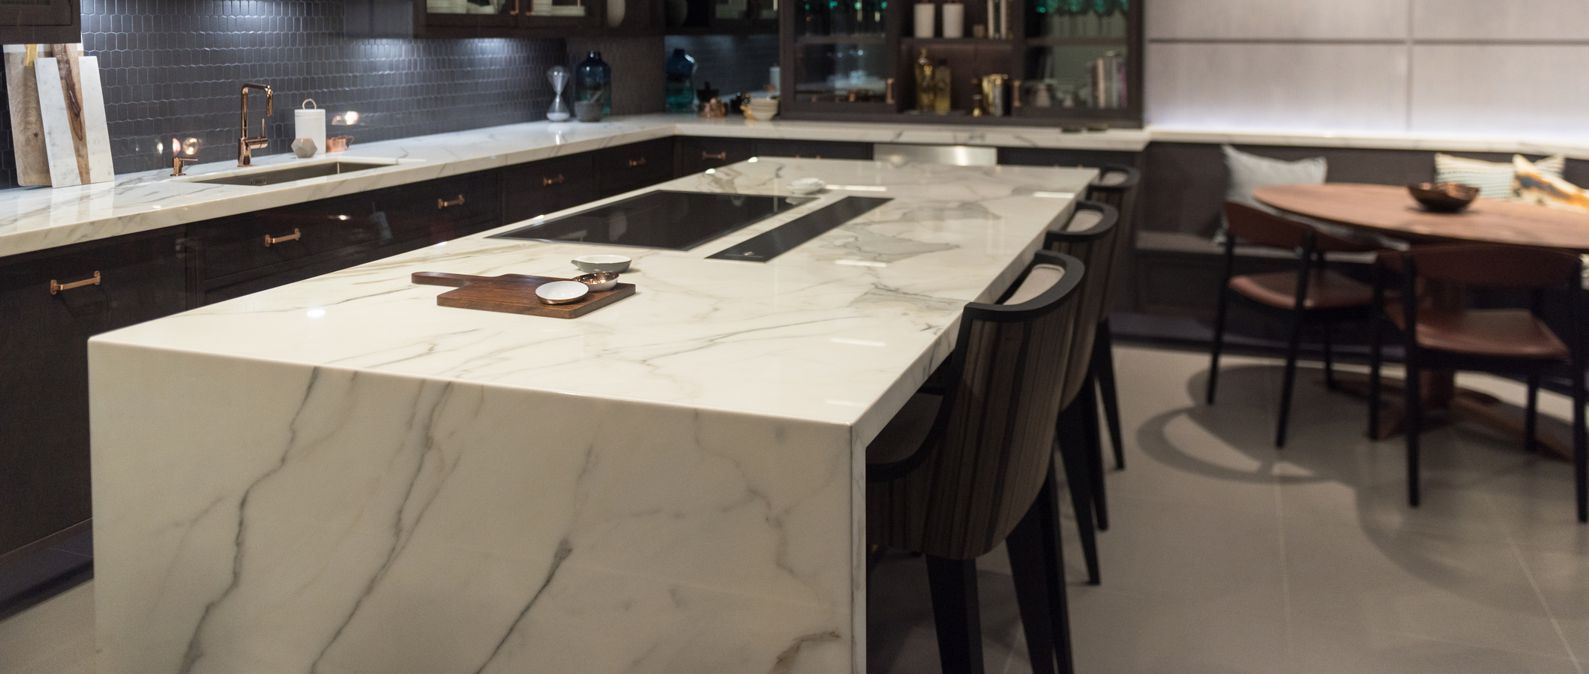 calacata bookmatch marble kitchen in central london top